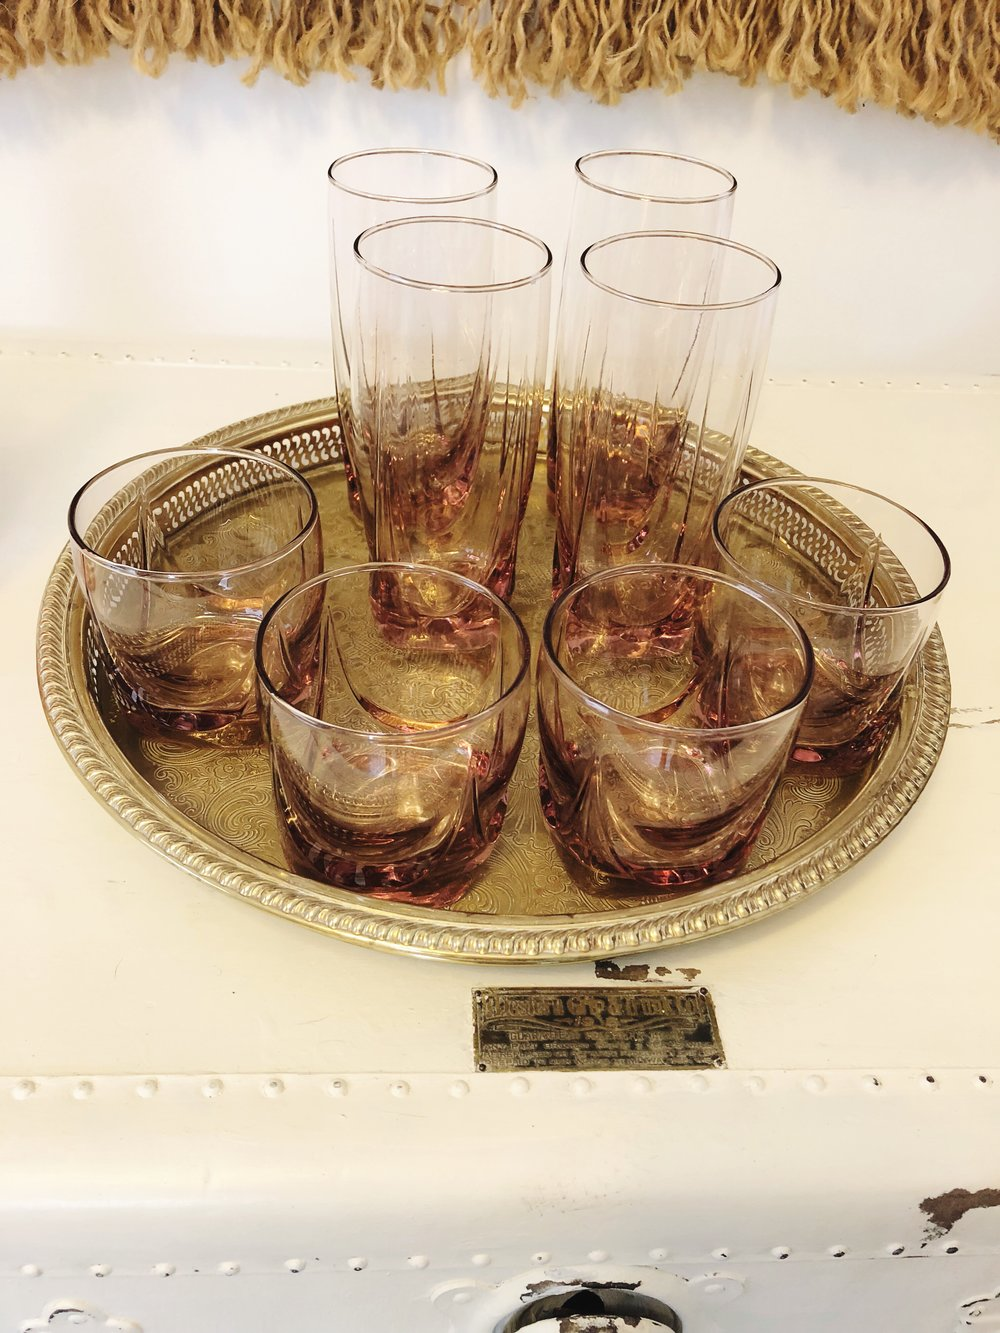 You can add this  8 piece set of pink vintage glassware  to your bar cart for $30.